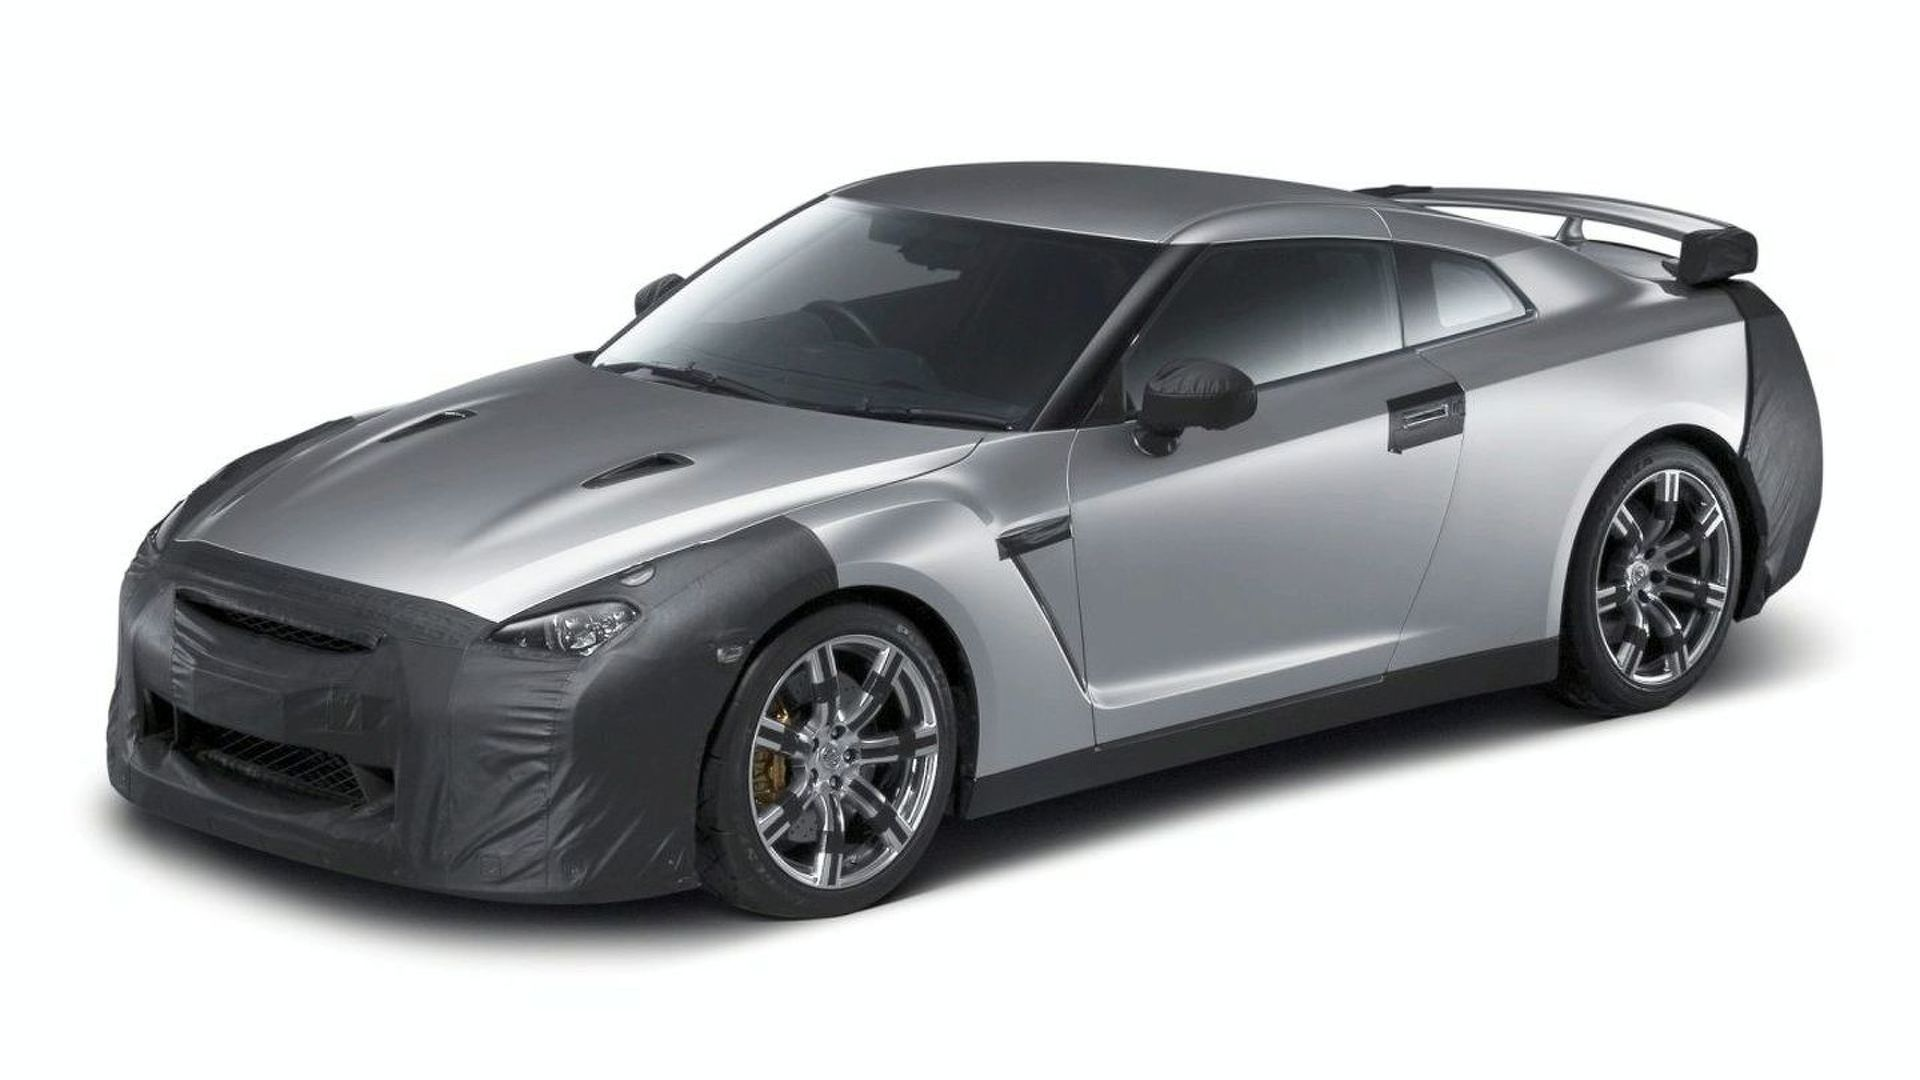 Nissan GT-R Priced Under $68,000